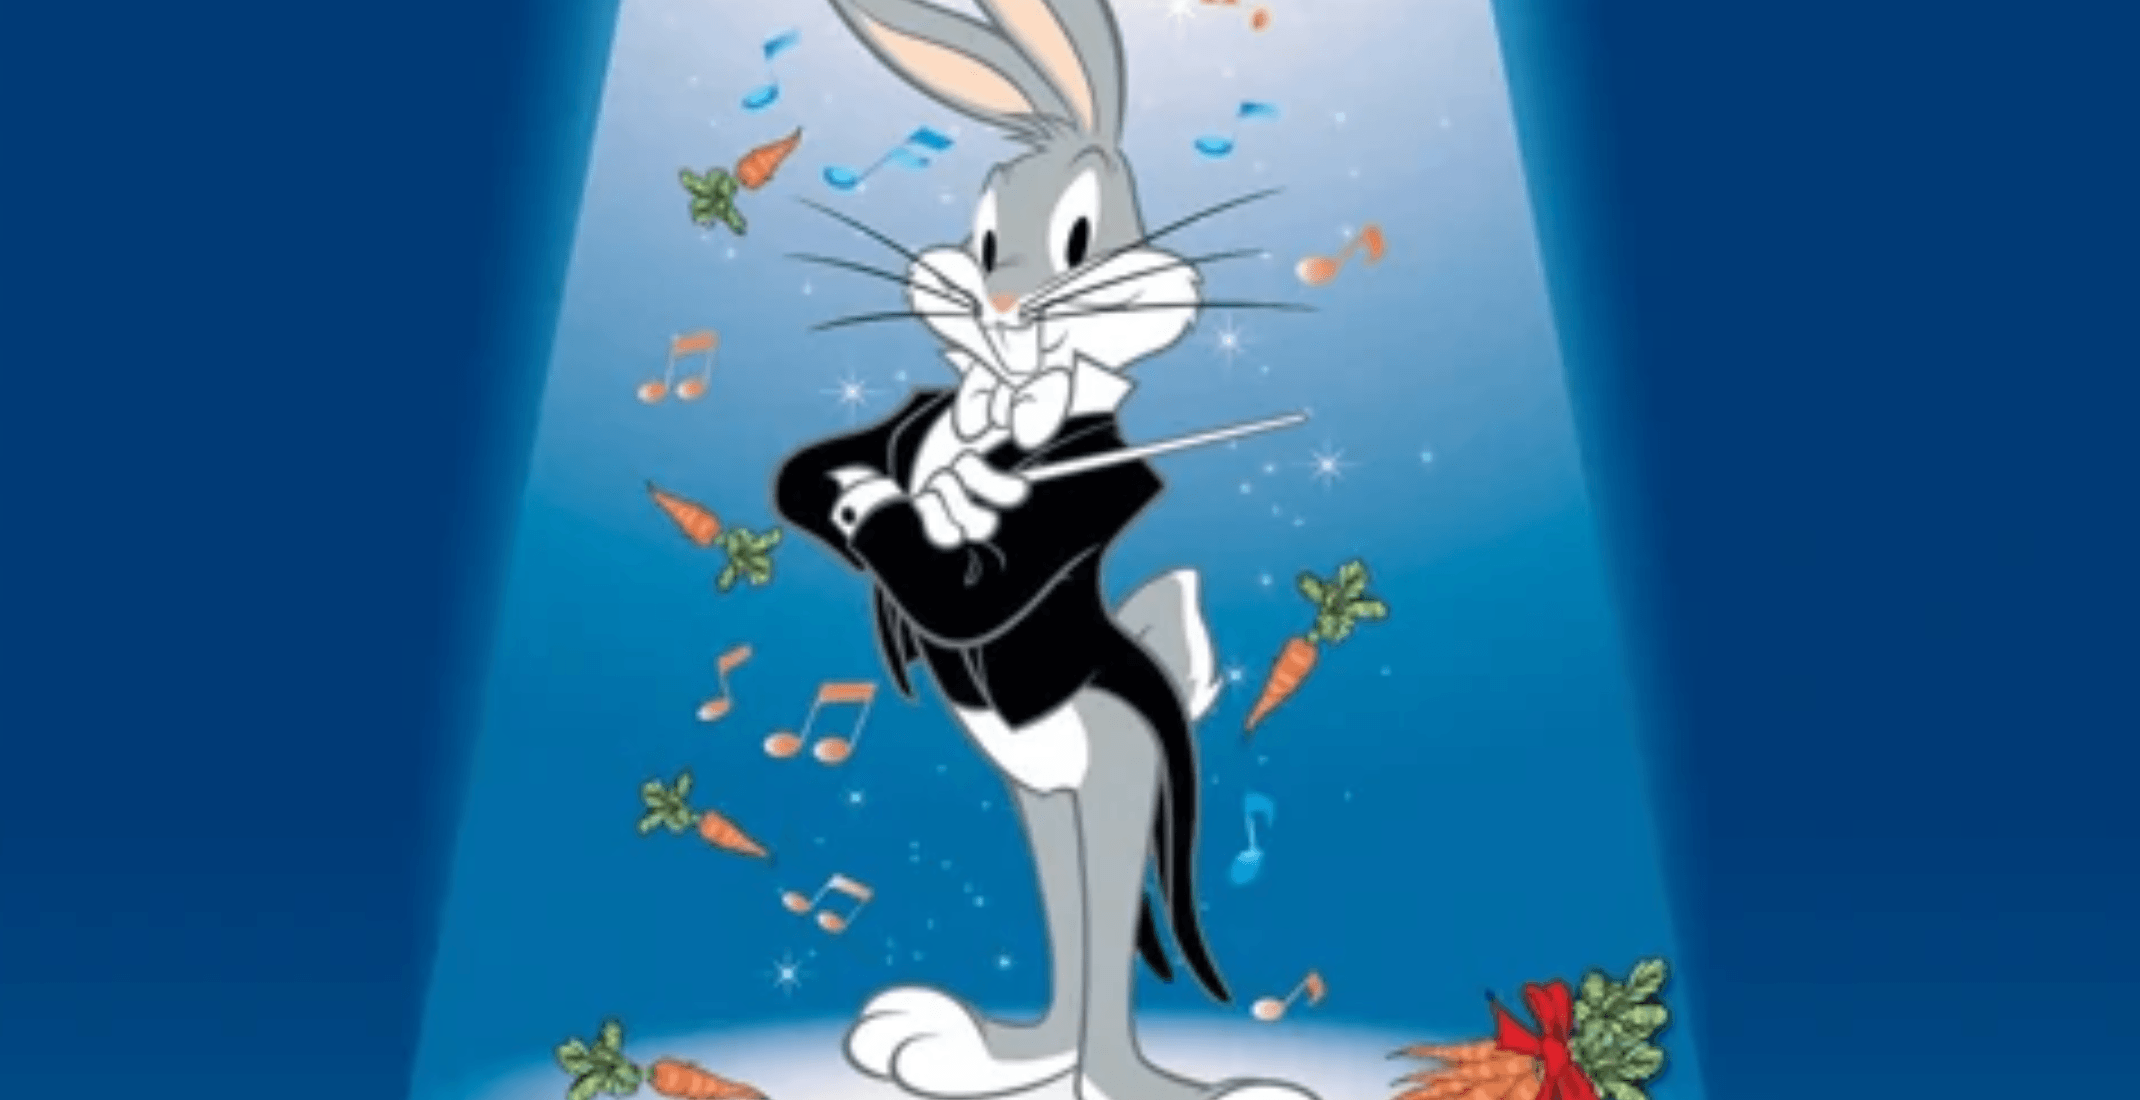 Vancouver Symphony Orchestra to celebrate Bugs Bunny and the Looney Tunes this July